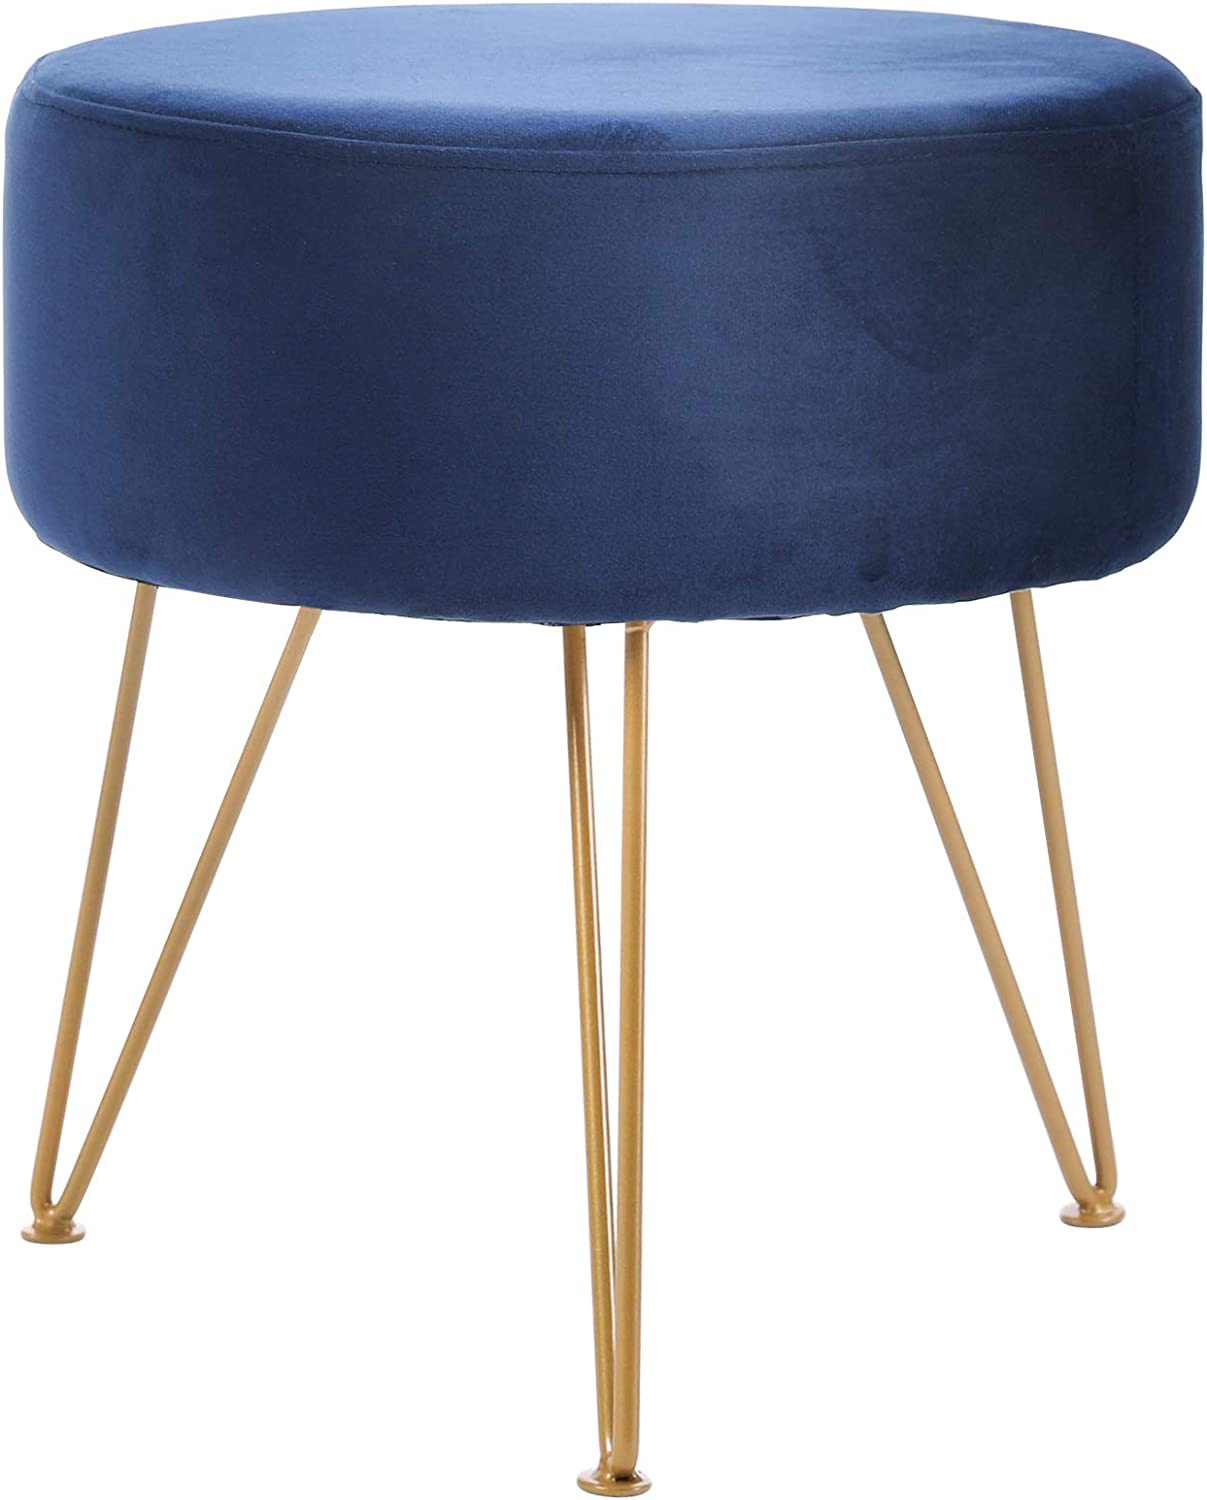 IBUYKE Ottoman Chair Stool Upholstered Footrest Stool Velvet Dressing Table Seat Pouf Couch Stool Golden Steel Legs (DiaxH) 39X45.5cm LG-008